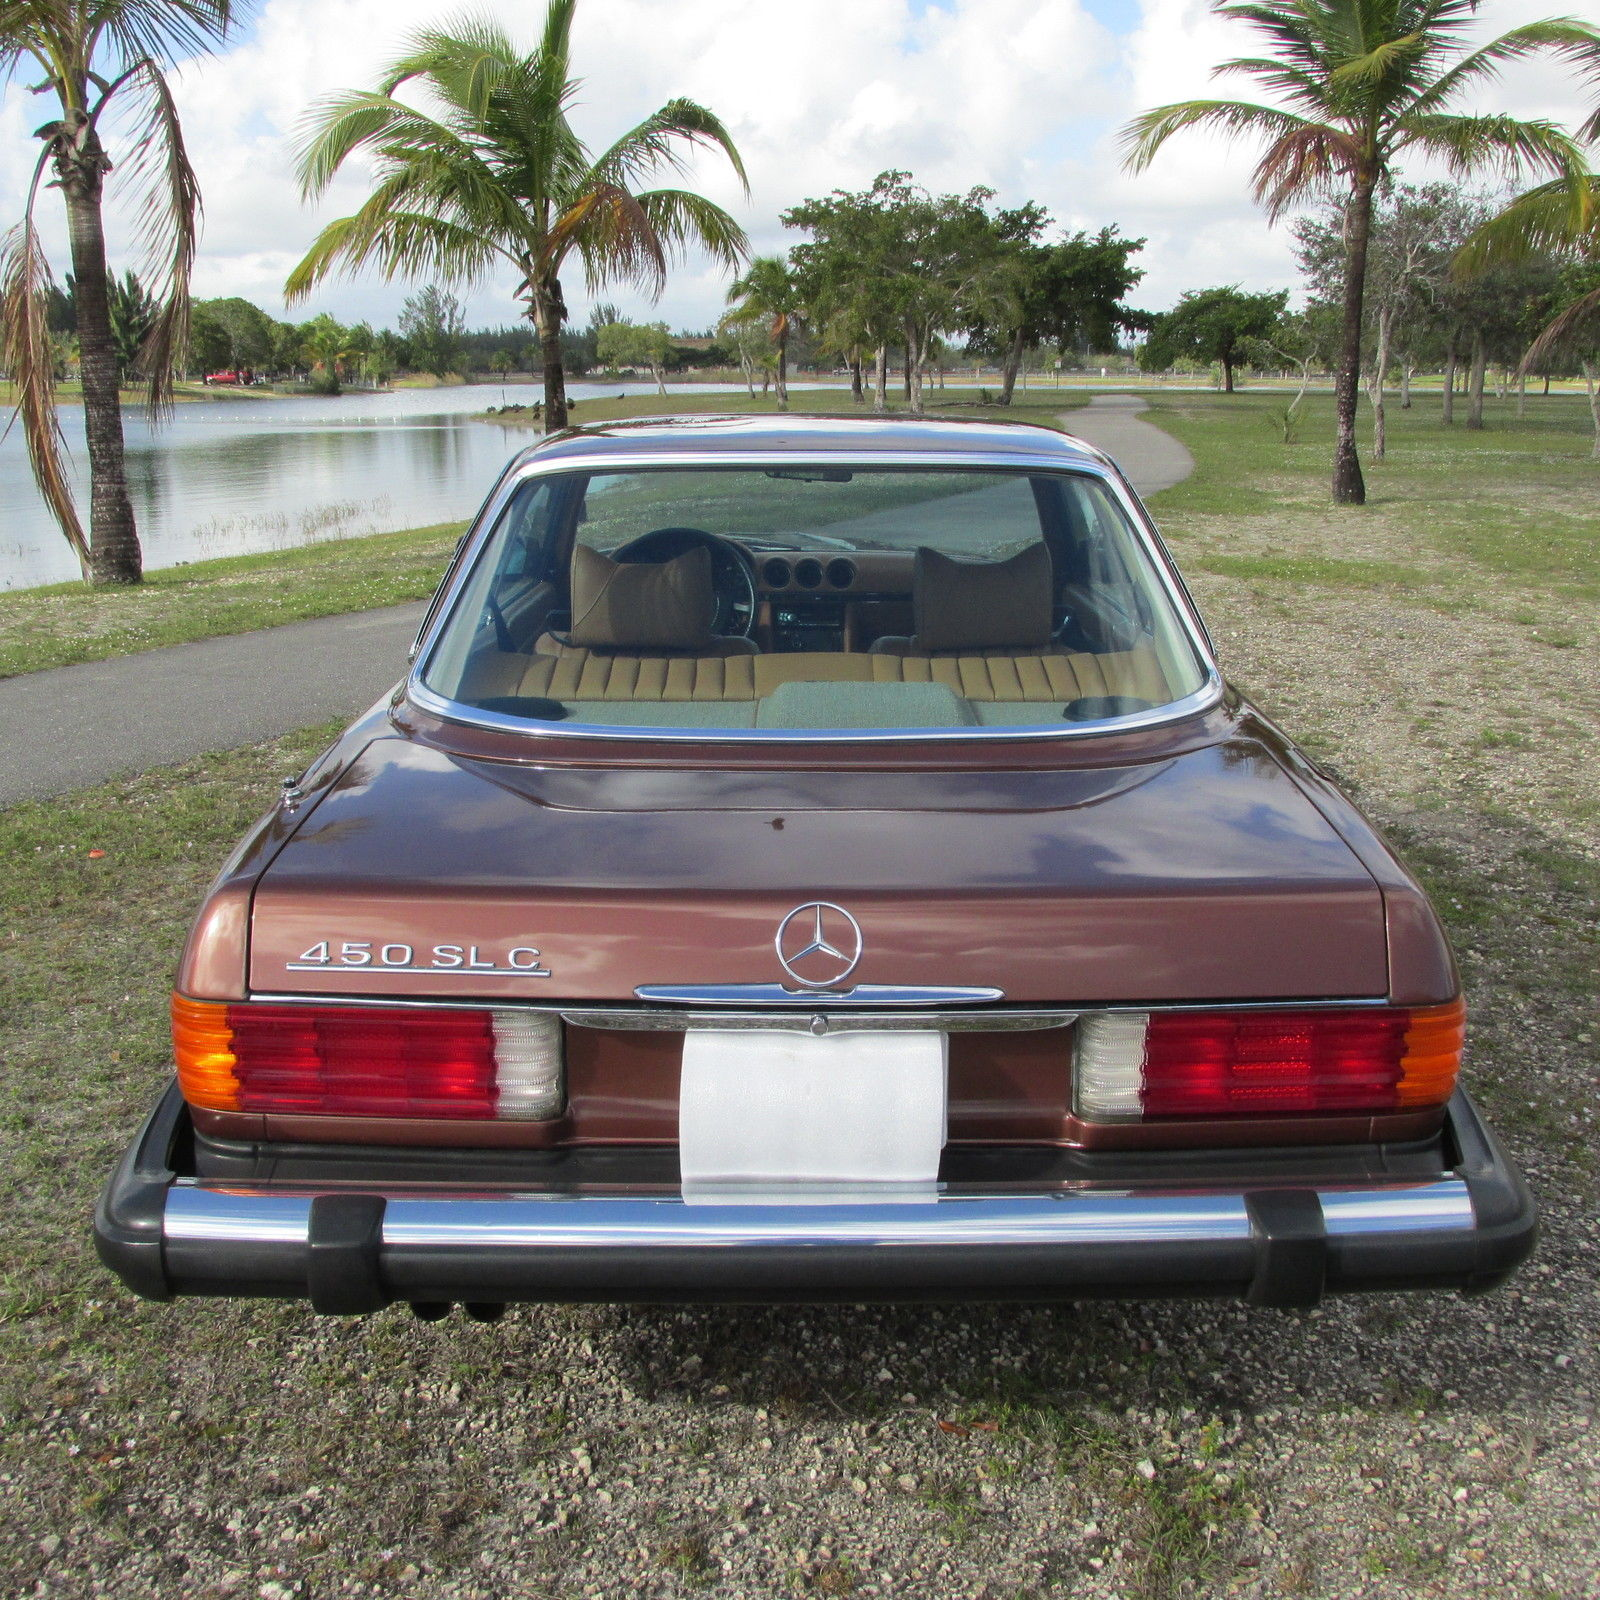 1976 mercedes 450 slc concourse condition all original only 23 k miles show new classic. Black Bedroom Furniture Sets. Home Design Ideas